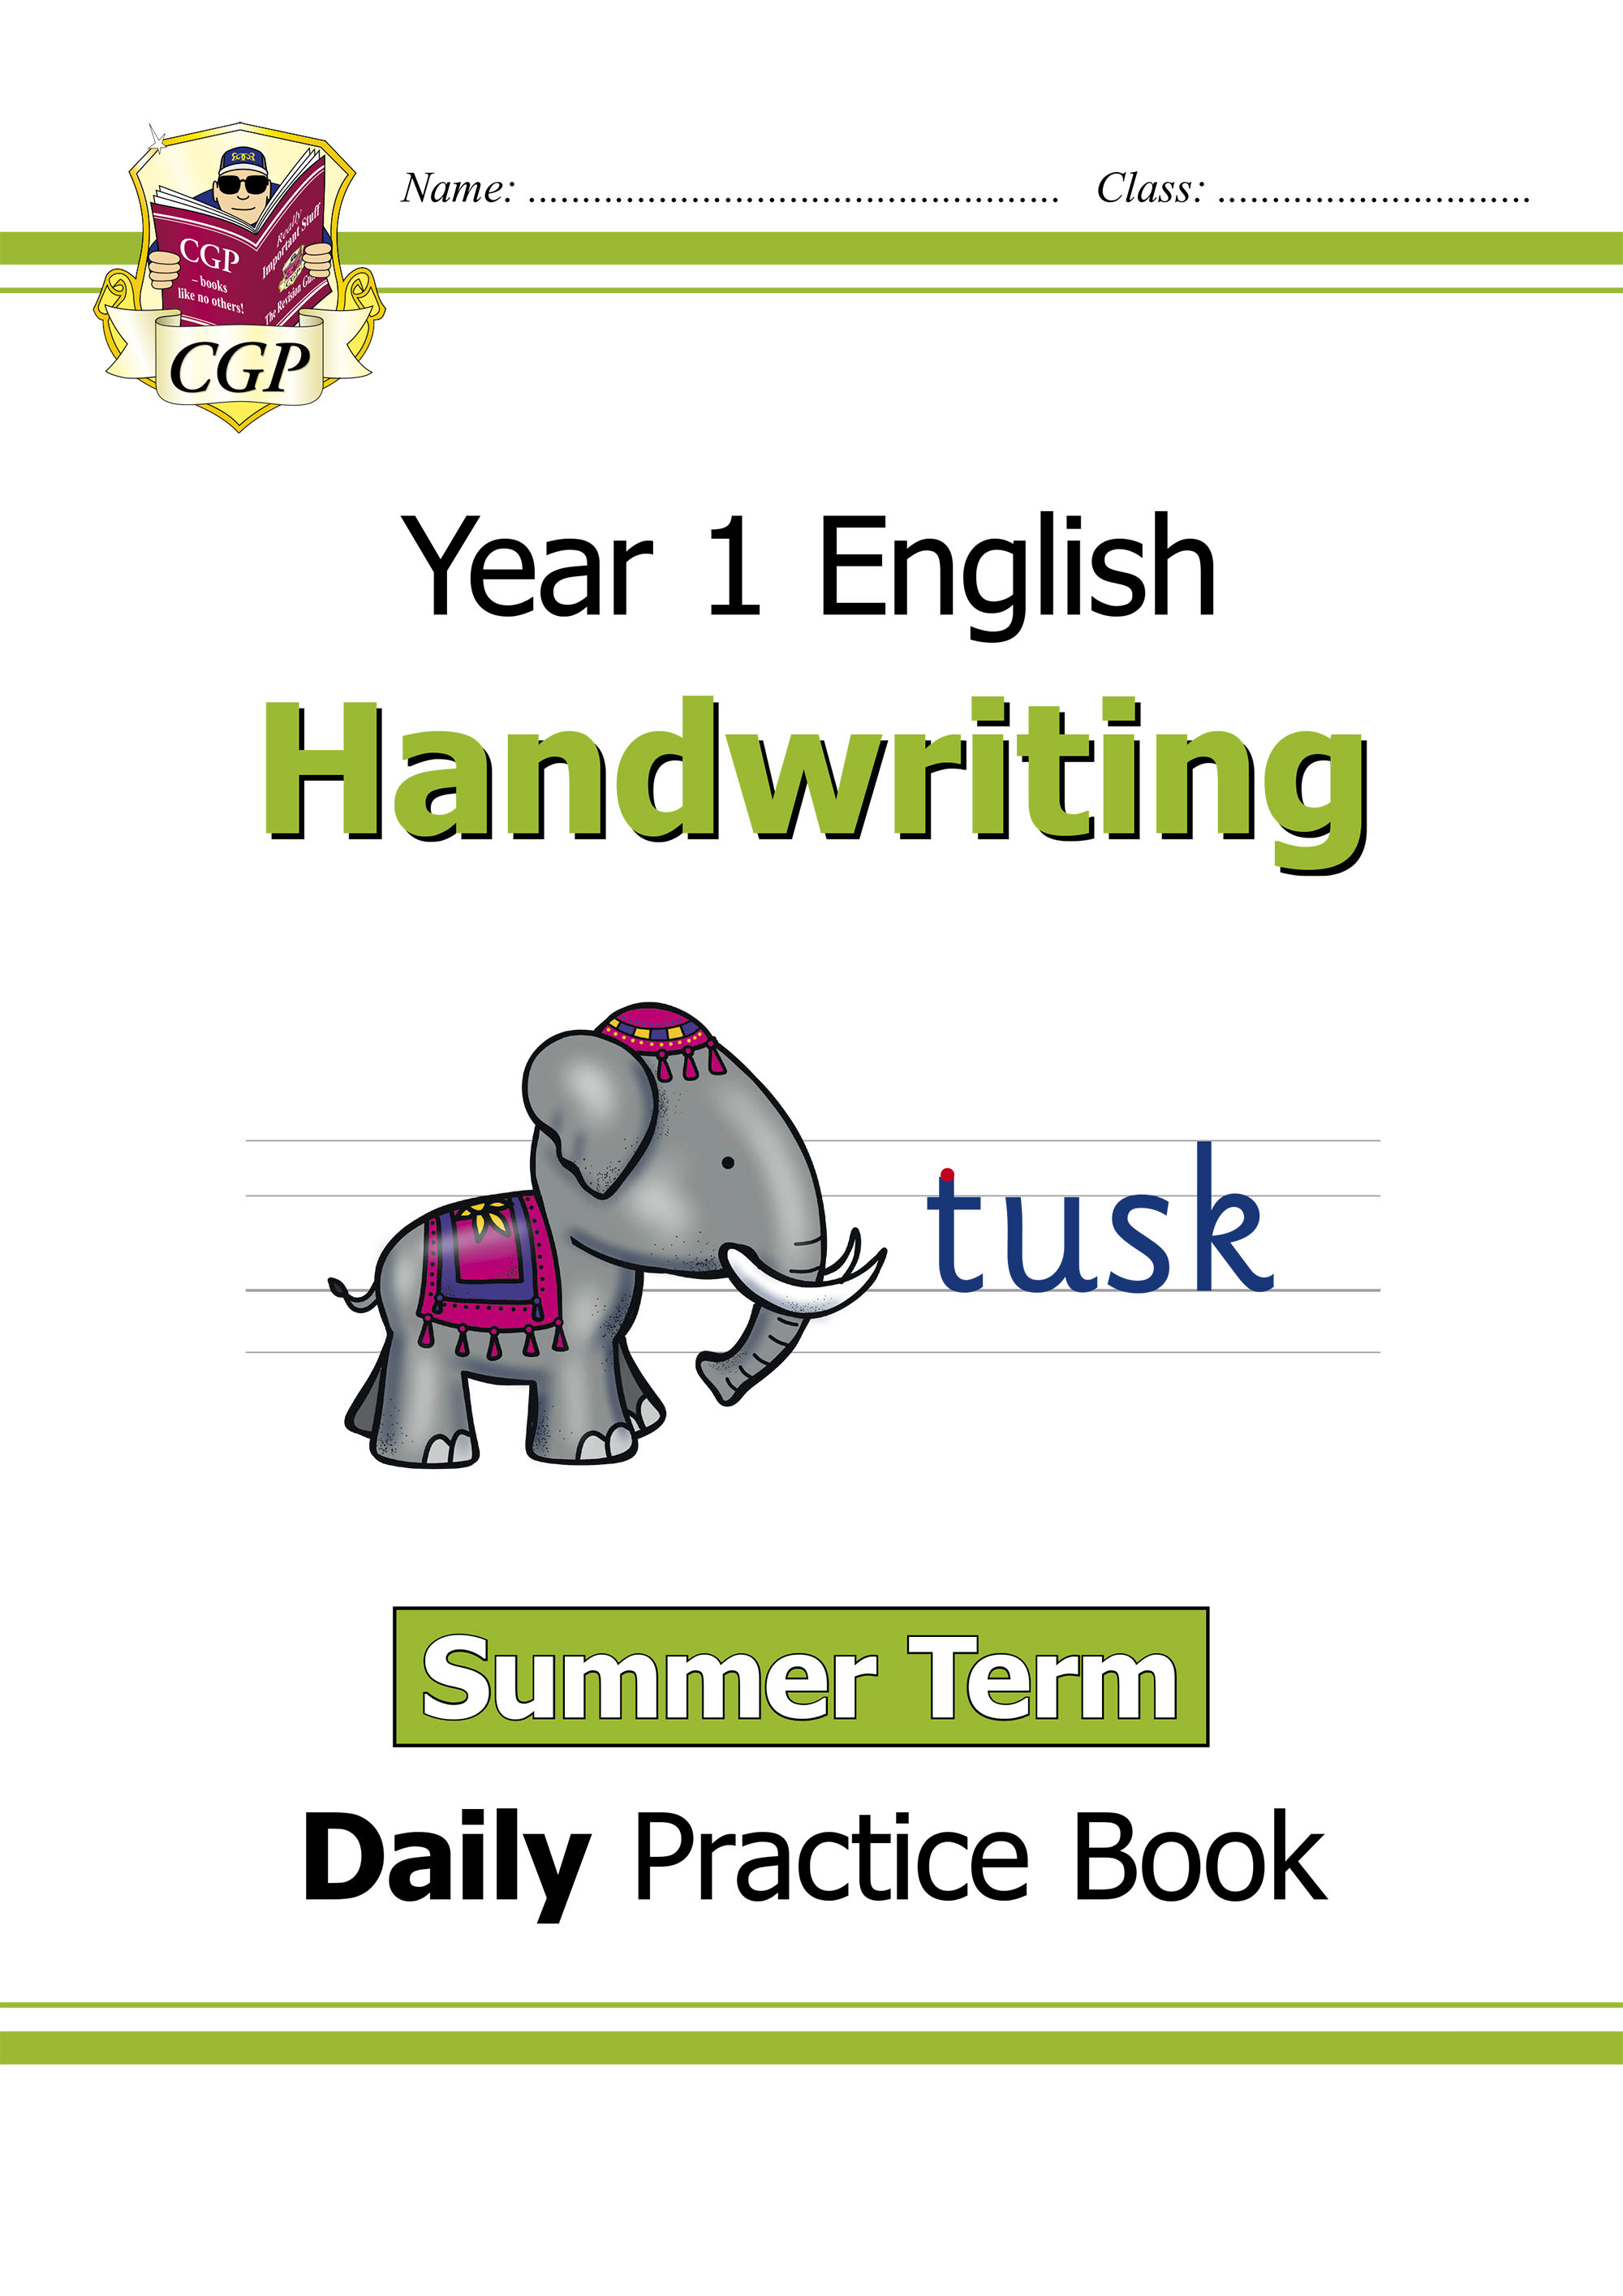 E1HWSU11D - New KS1 Handwriting Daily Practice Book: Year 1 - Summer Term Online Edition